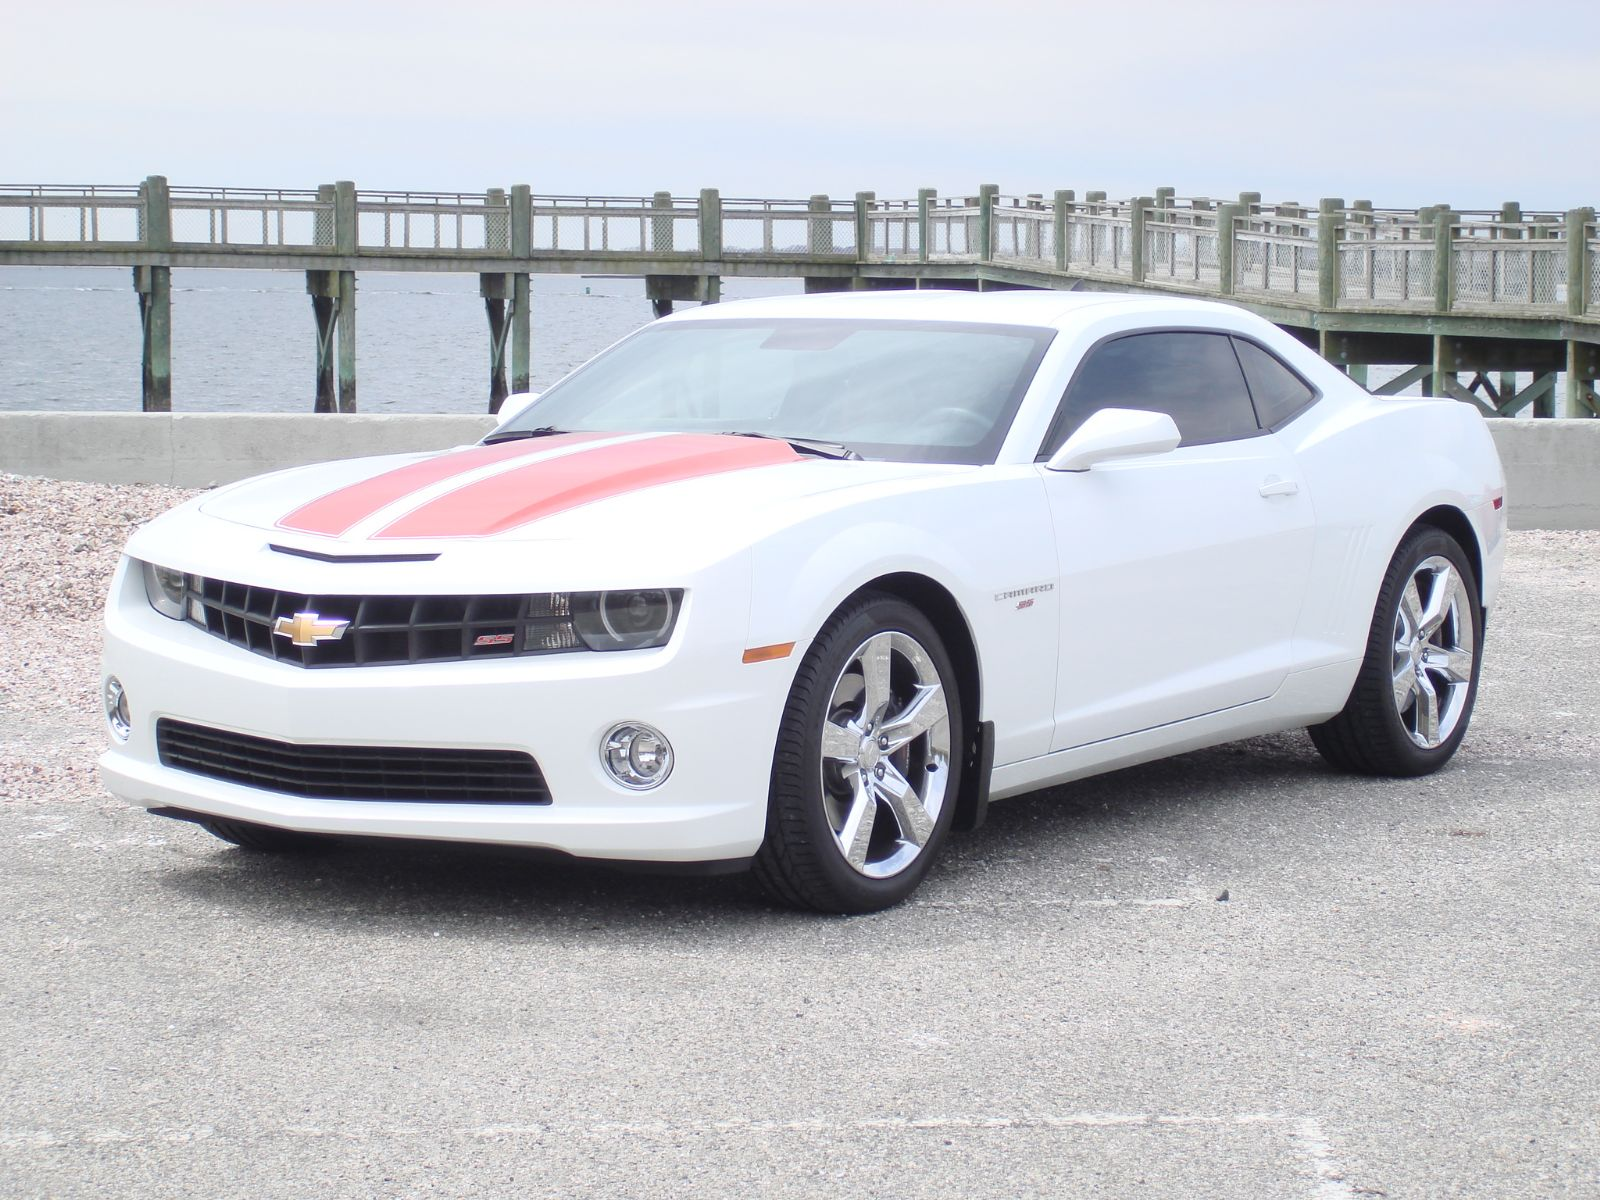 2010 chevrolet camaro ss for sale milford connecticut. Cars Review. Best American Auto & Cars Review